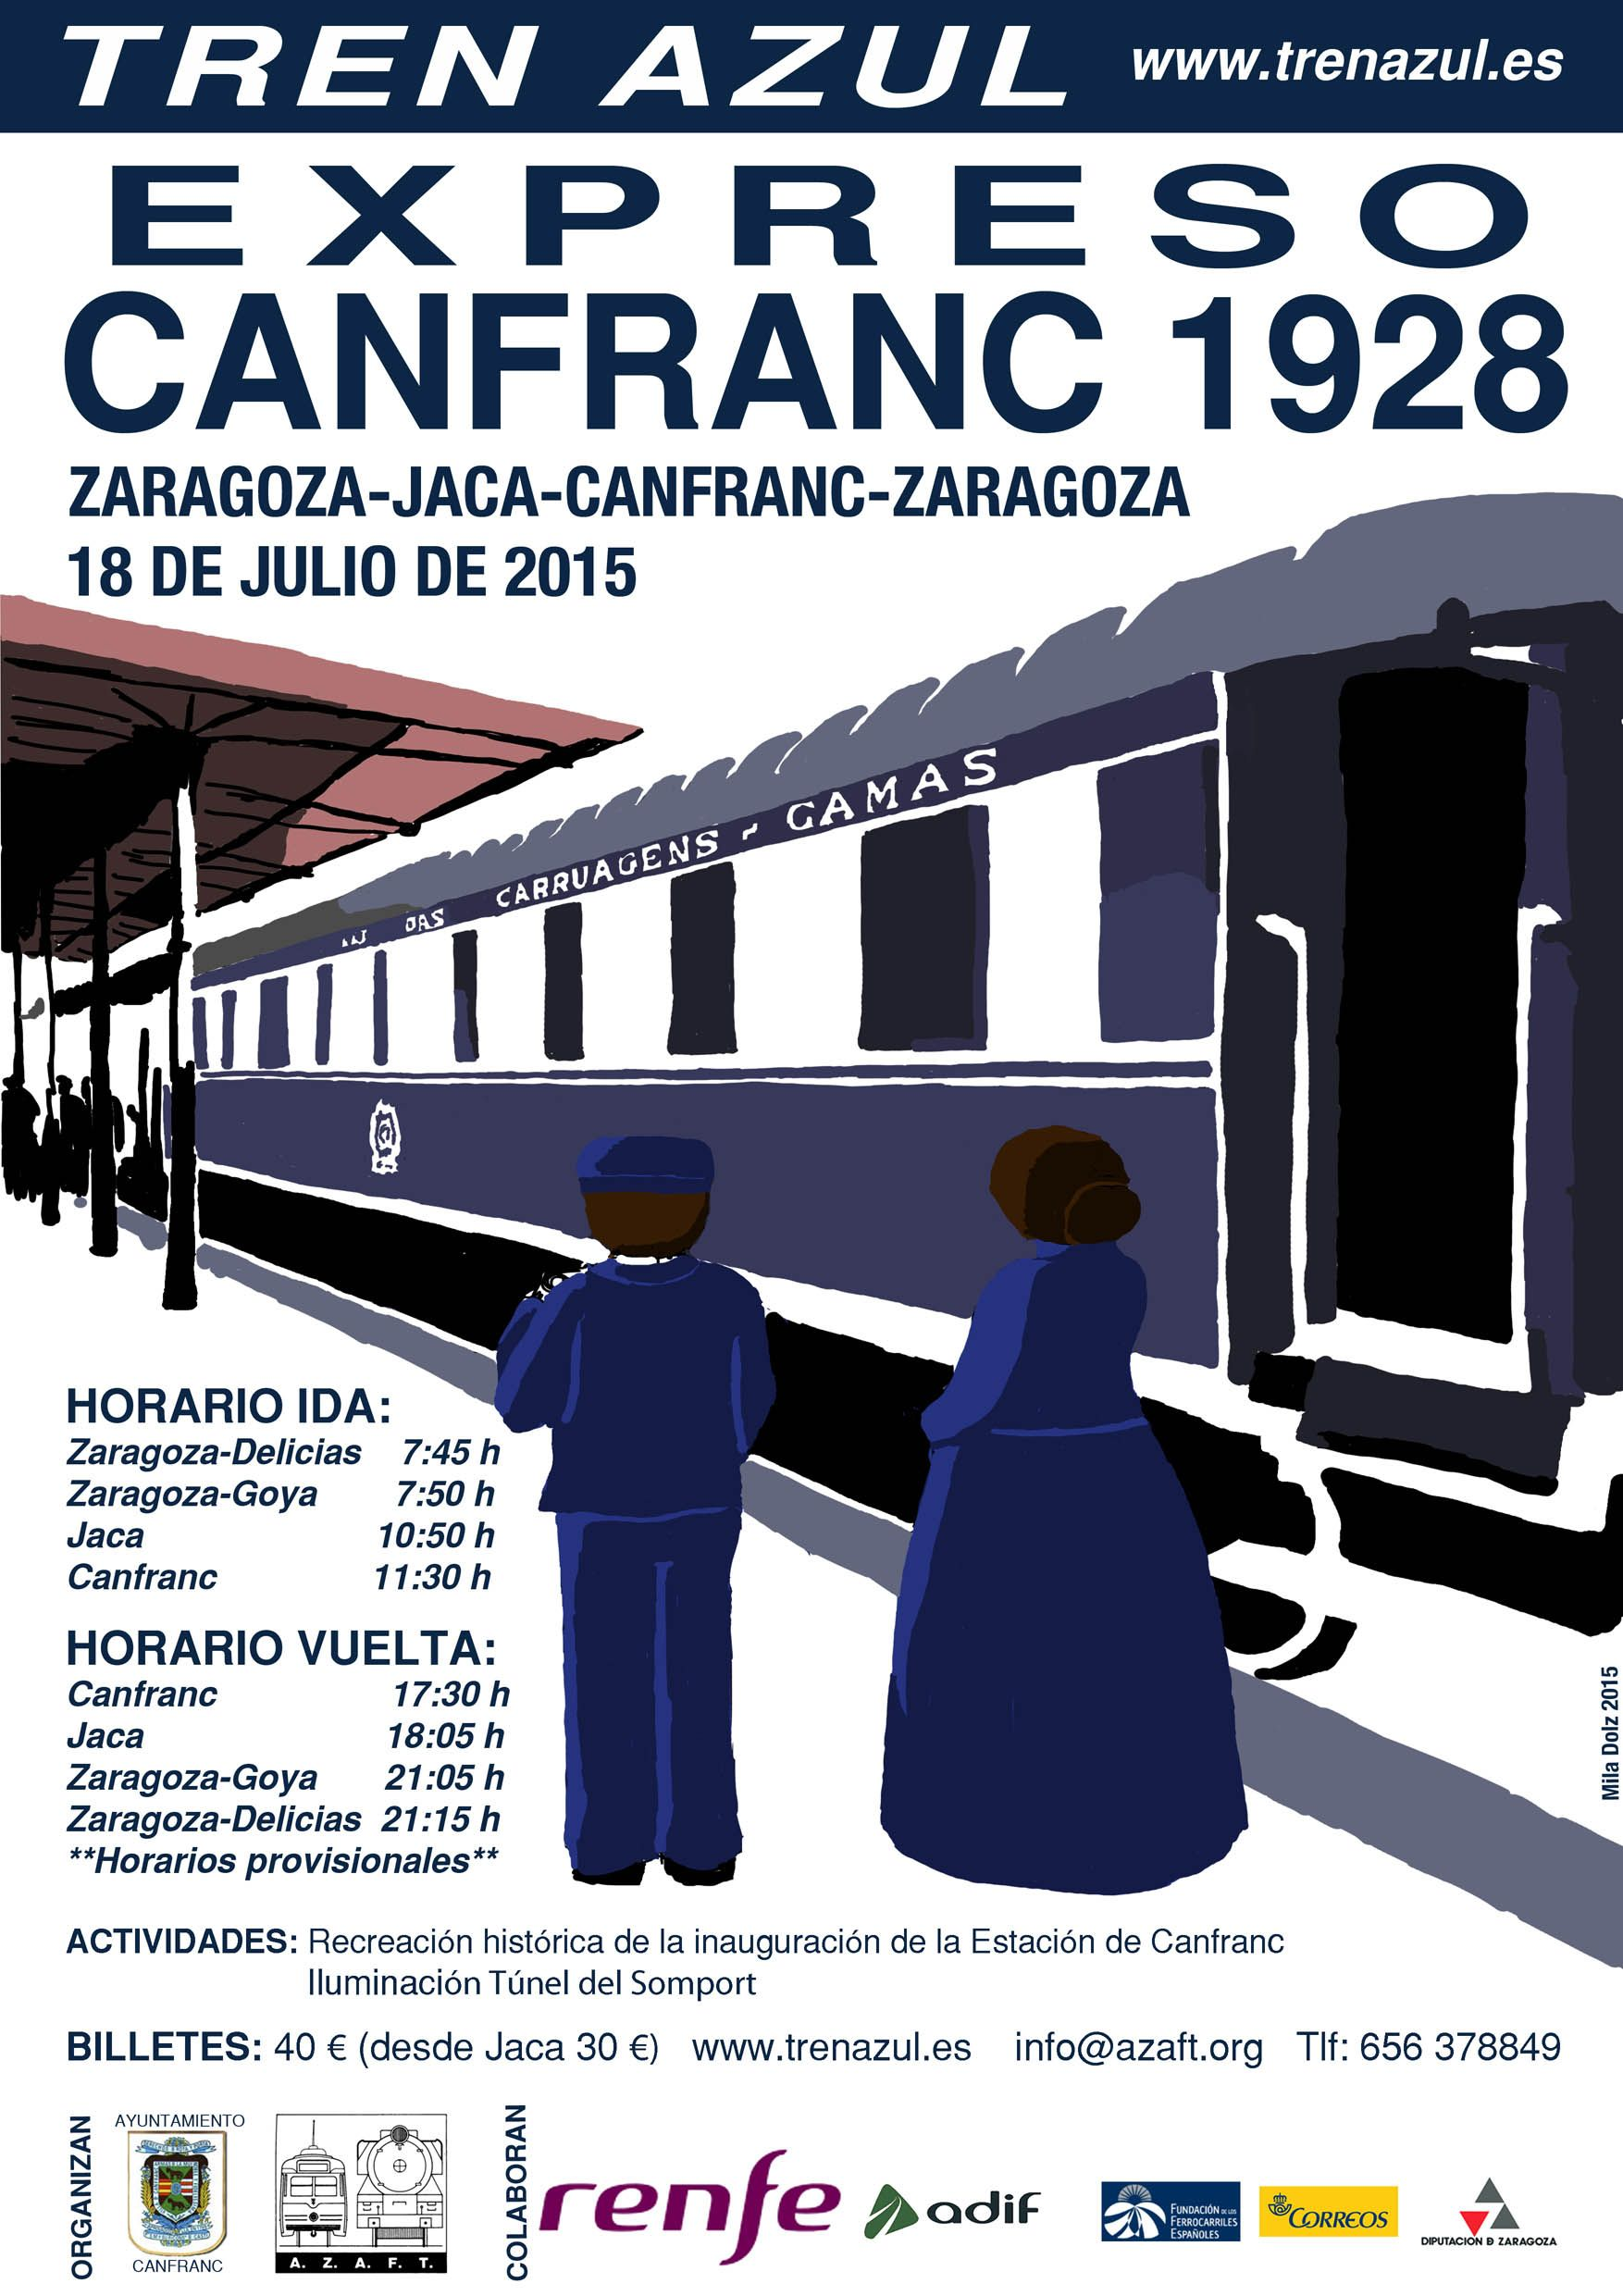 Expreso Canfranc 1928